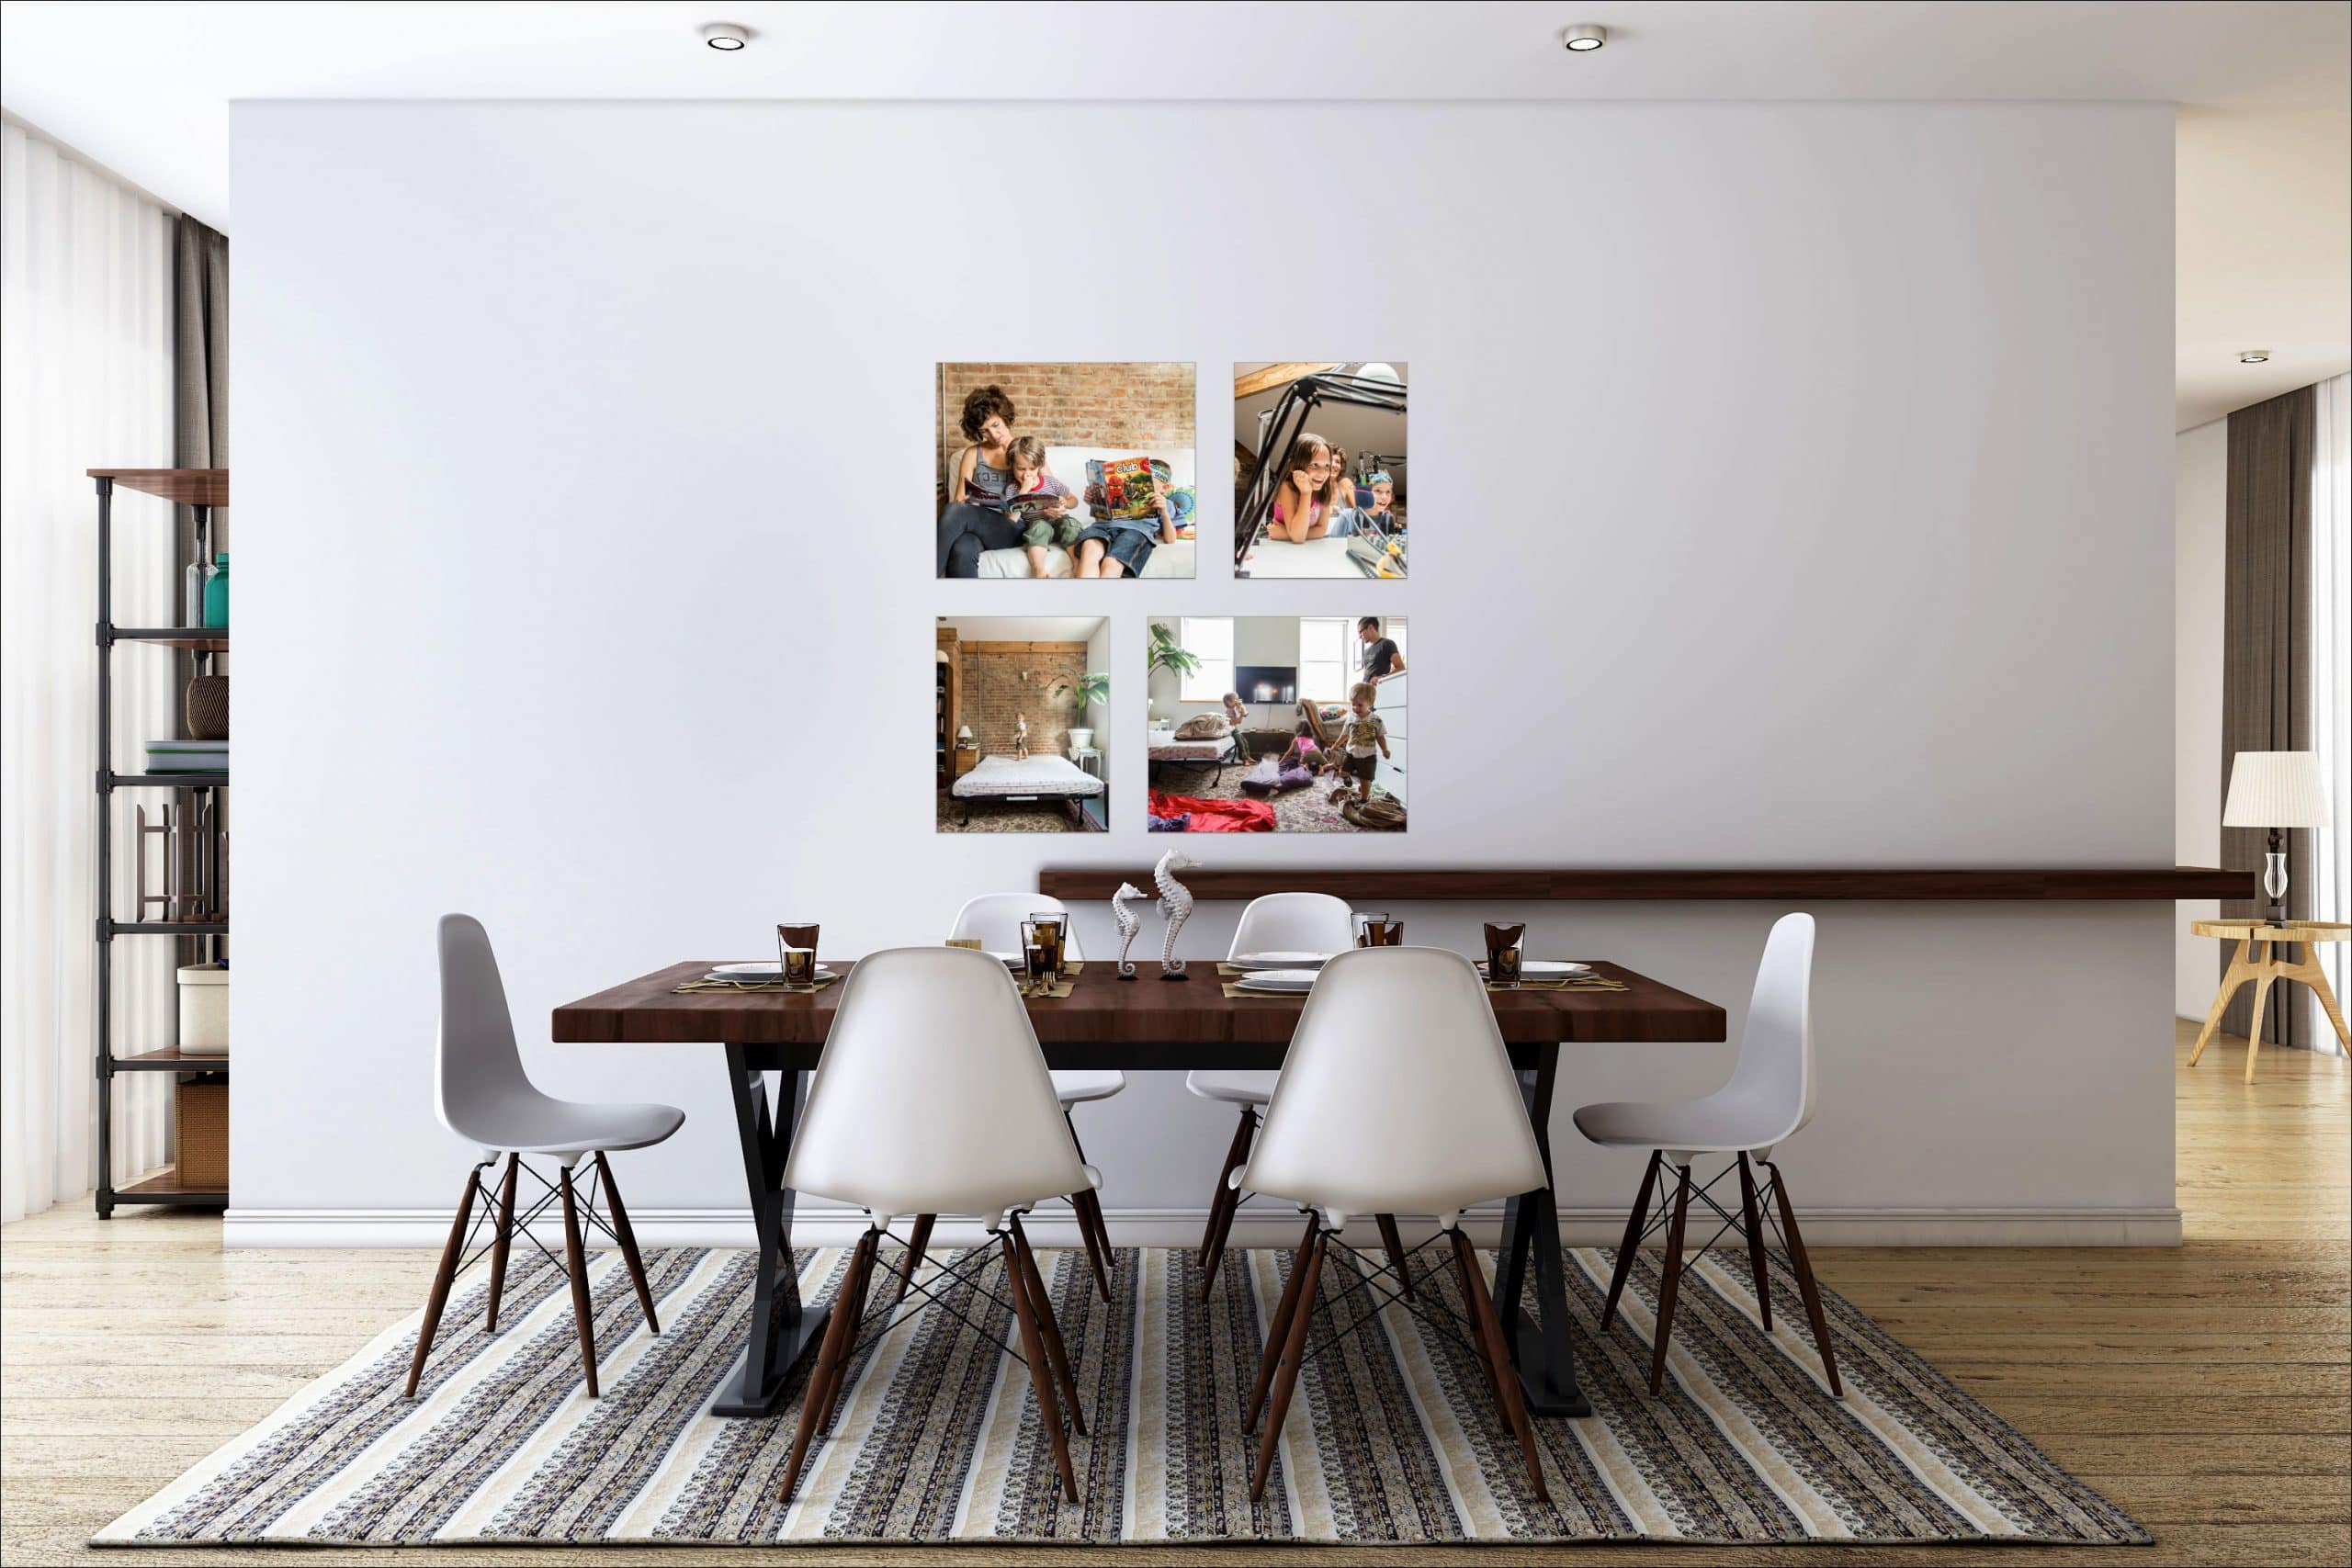 Family Portraits on Dining Room Wall